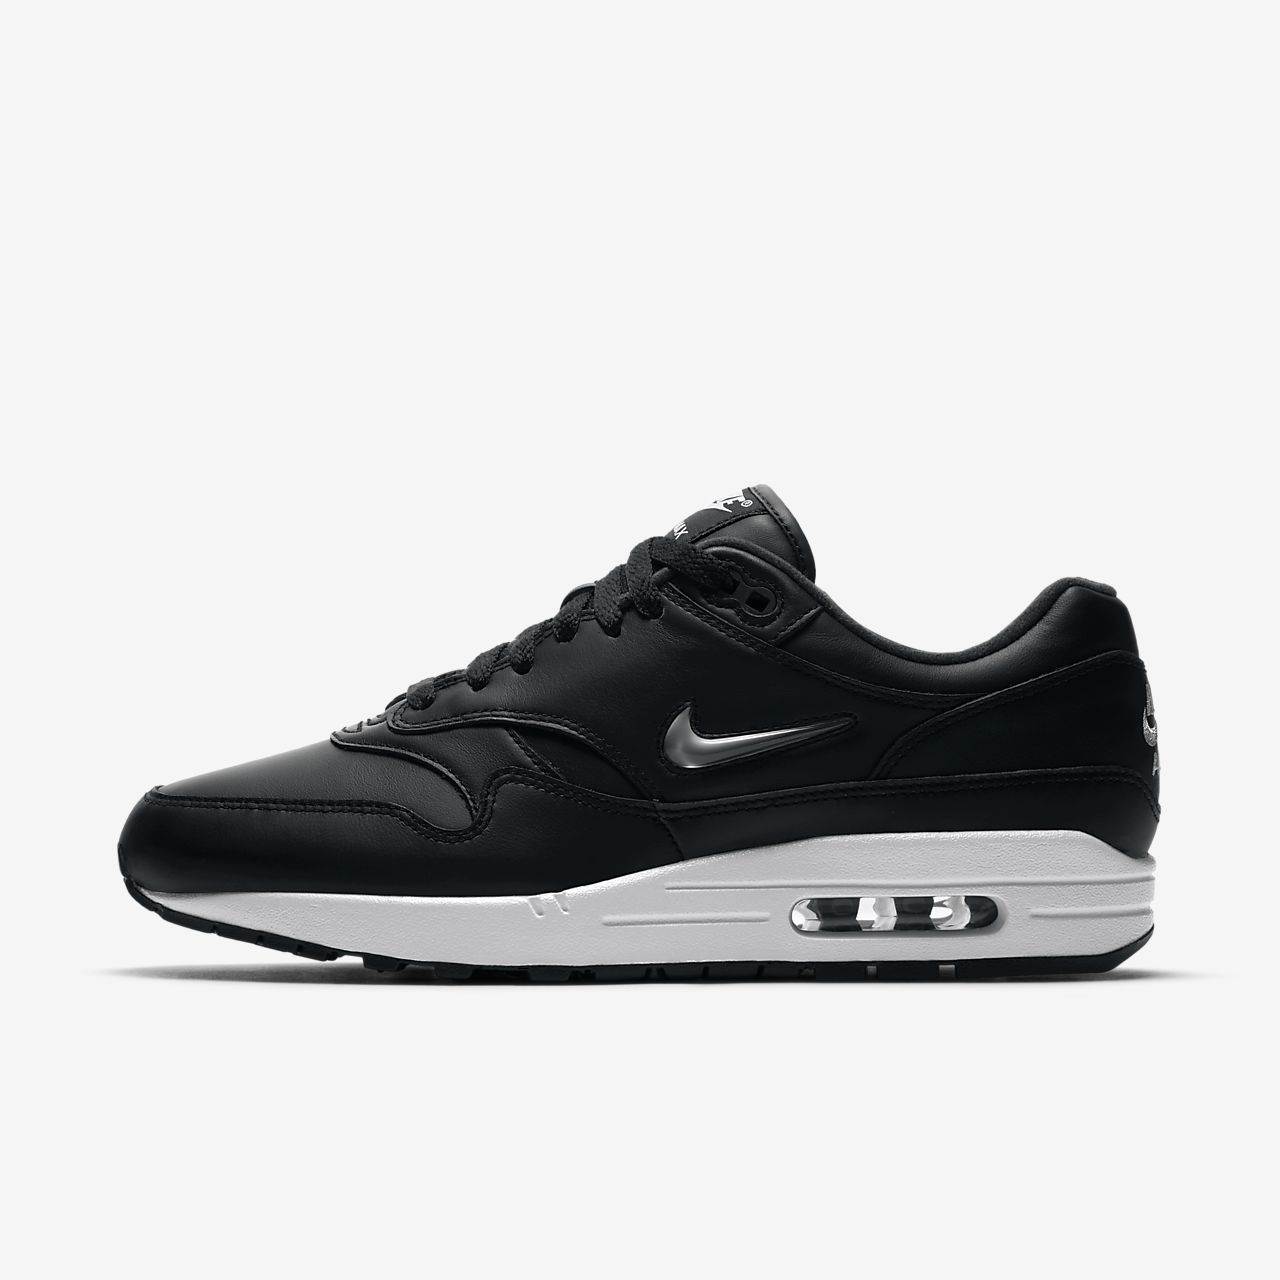 ... Nike Air Max 1 Premium SC Men's Shoe